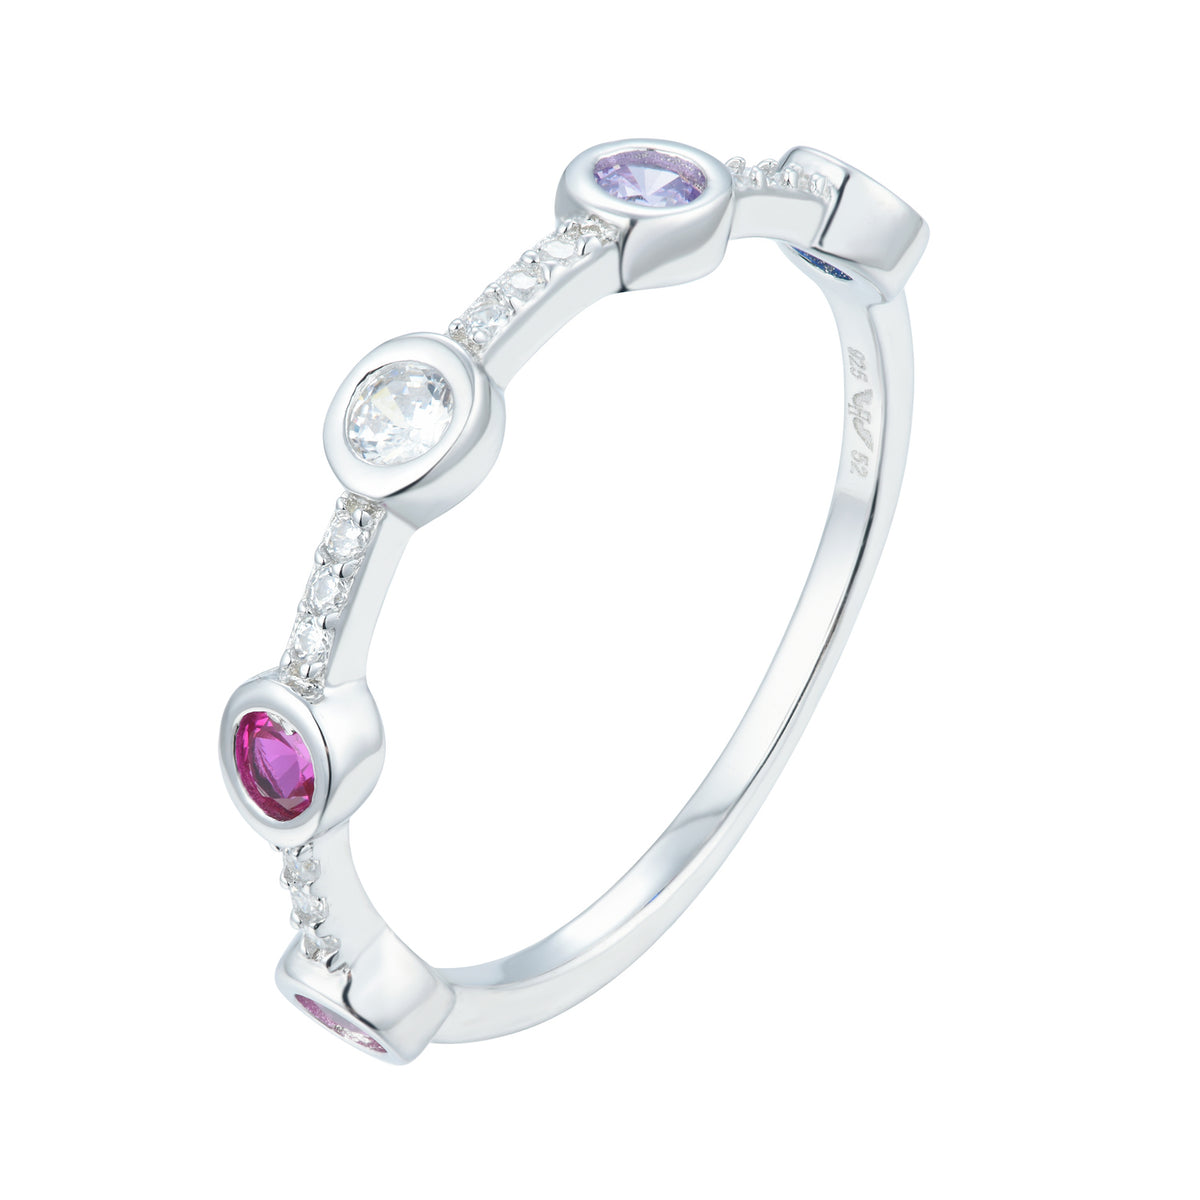 Fortuna | Verona Ring | 925 Silver | Multicolour CZ | White Rhodium Plated